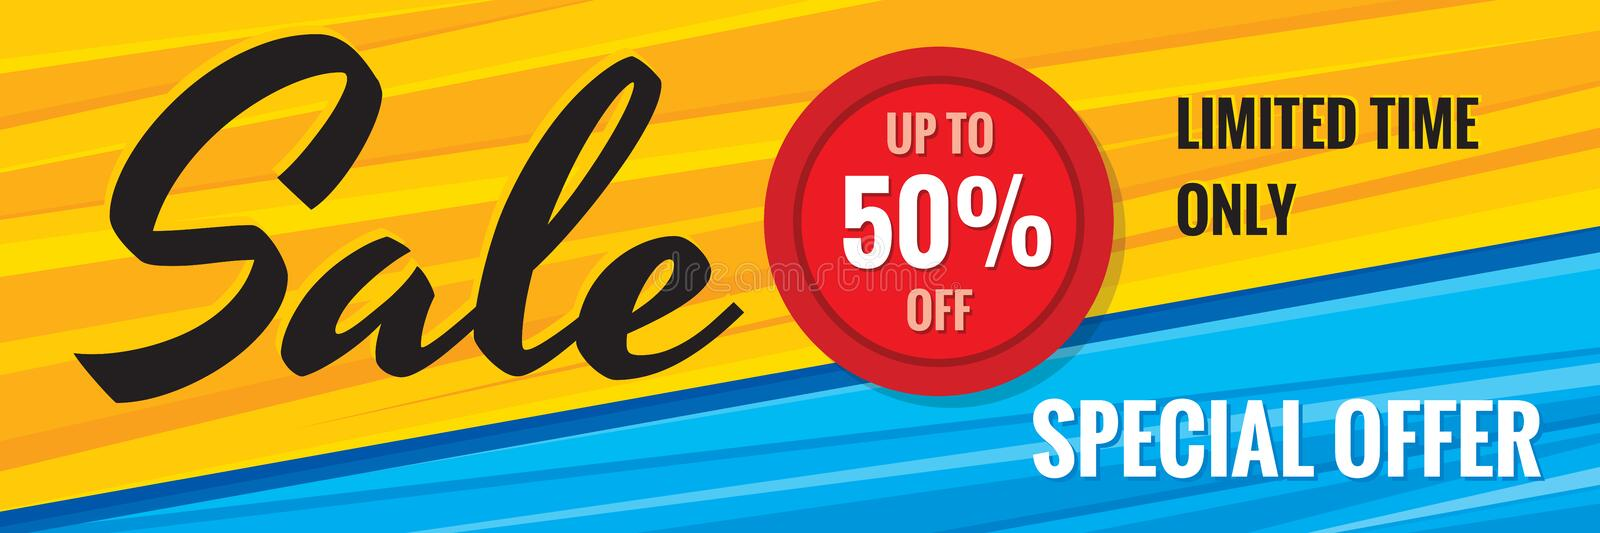 Sale discount up to 50% off - creative horizontal banner vector illustration. Special offer abstract advertising promotion concept stock illustration